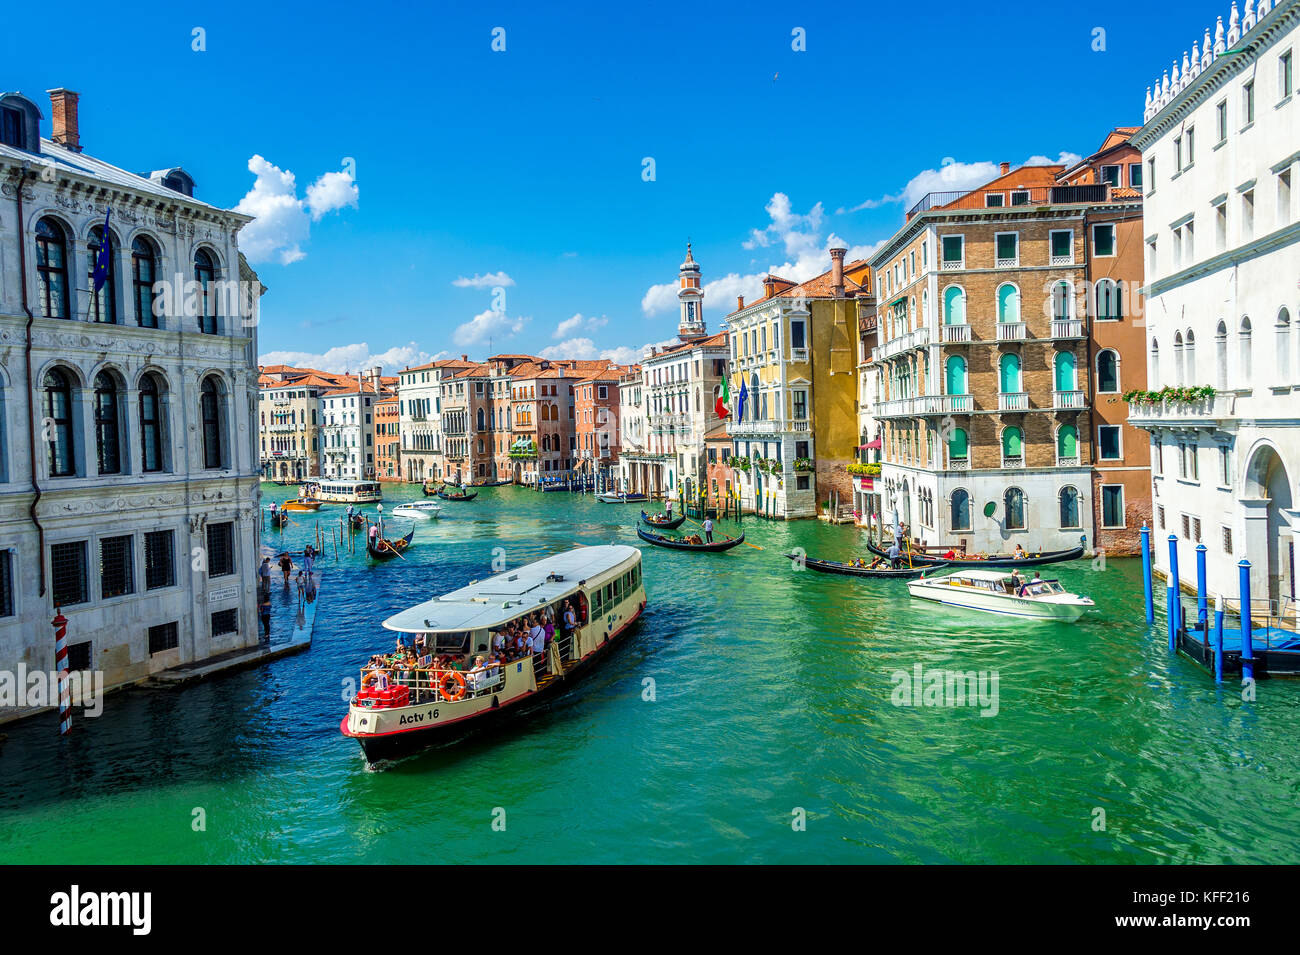 A Vaporetto and Gondolas on the Grand Canal in Venice, Italy - Stock Image